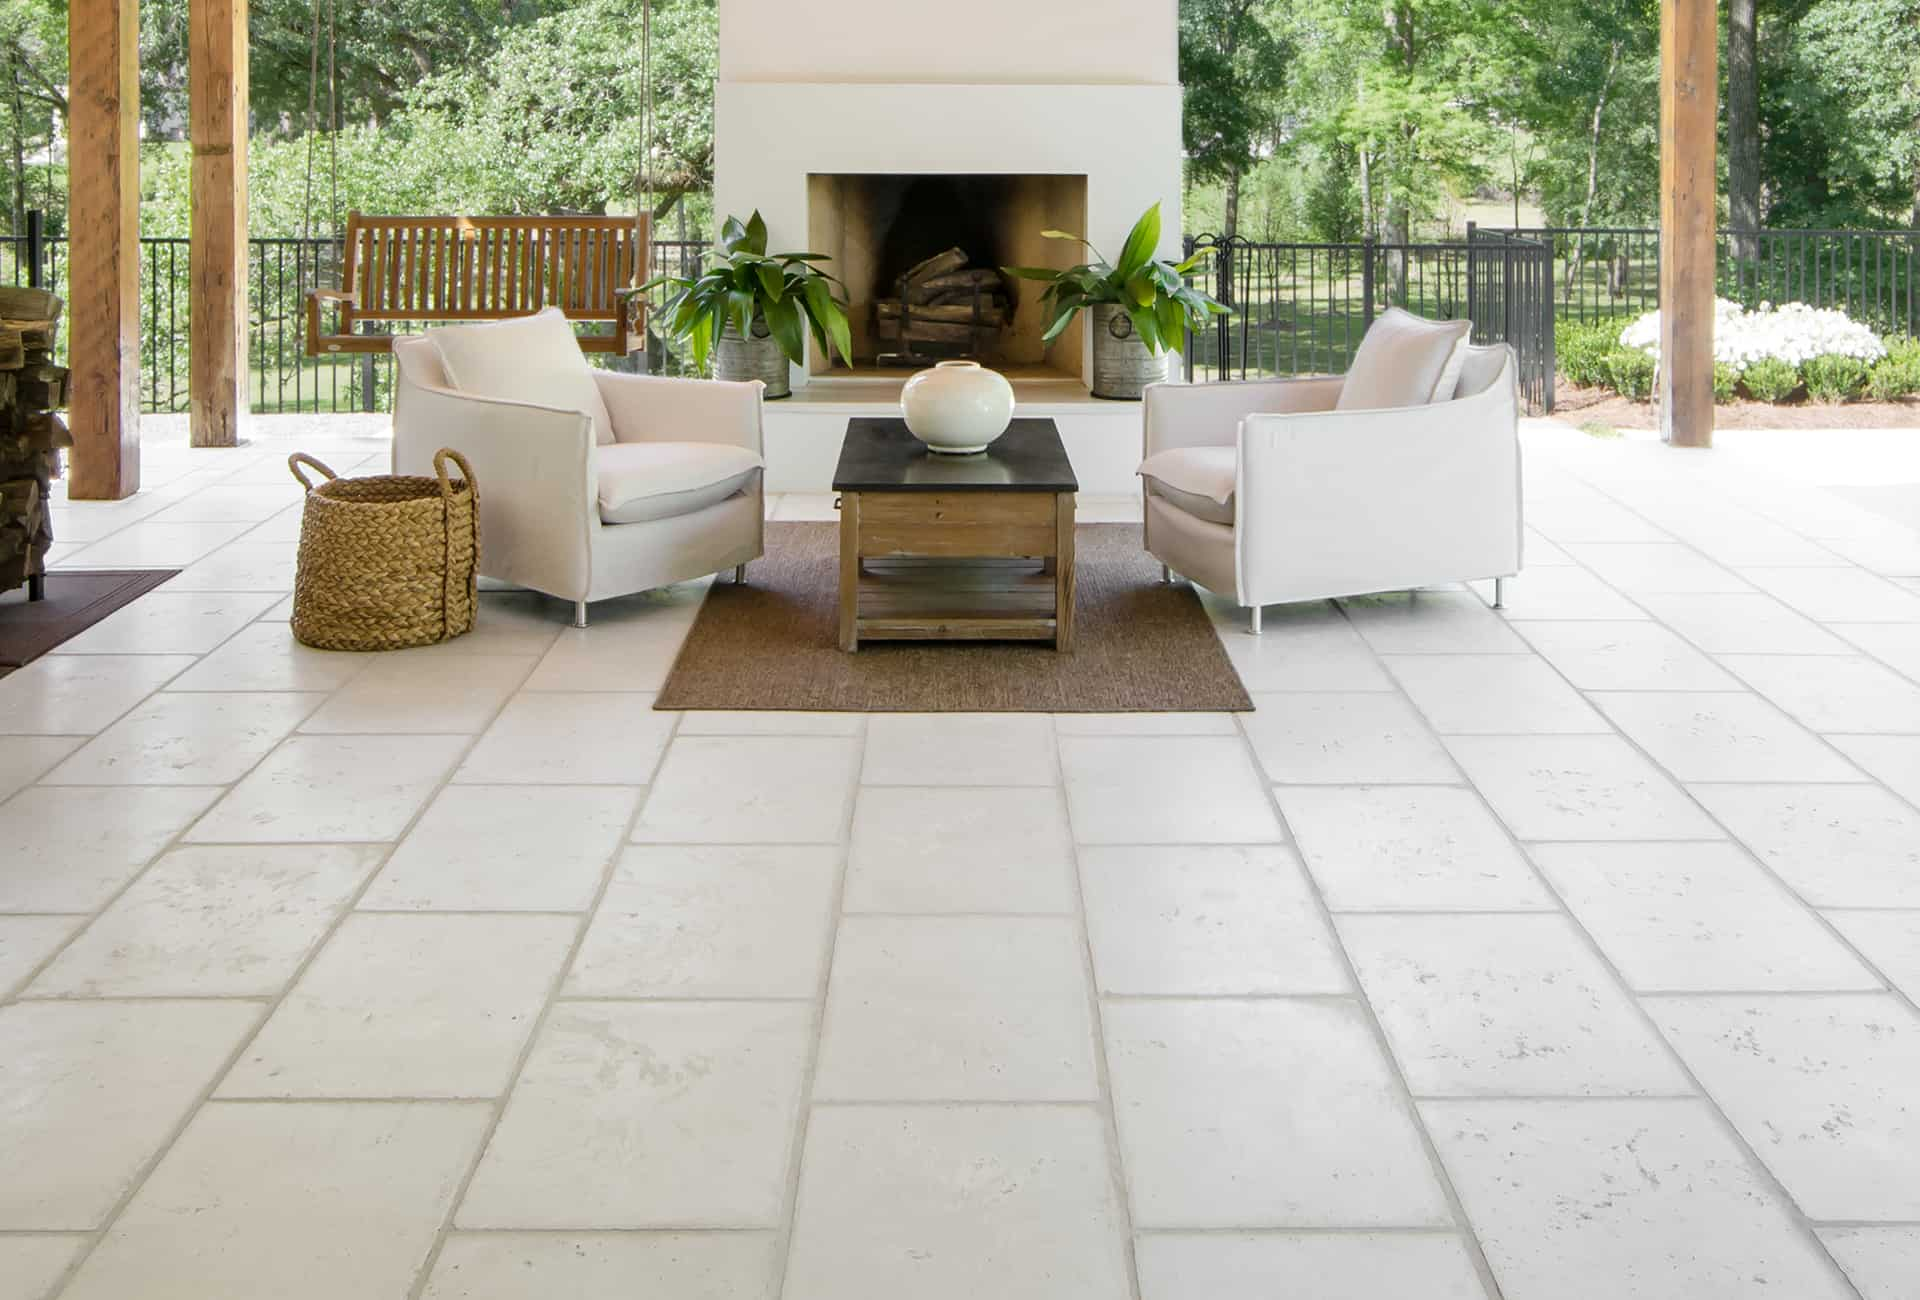 Rice White Exterior Paving